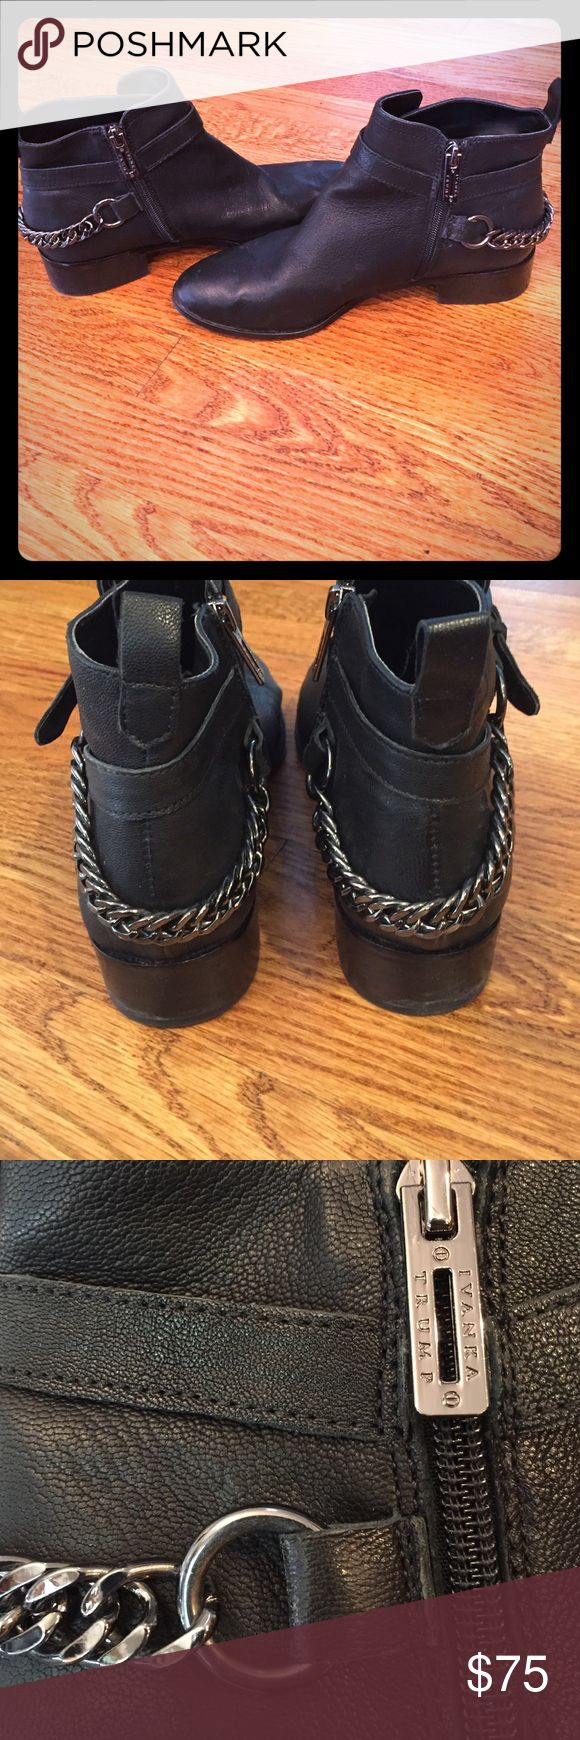 Flash Sale✨ Ivanka Trump Black Leather Ankle Boots Adorable Ivanka Trump black leather ankle boots with chain and buckle details. Size 8.5. Gently used, great condition. Price firm. Ivanka Trump Shoes Ankle Boots & Booties